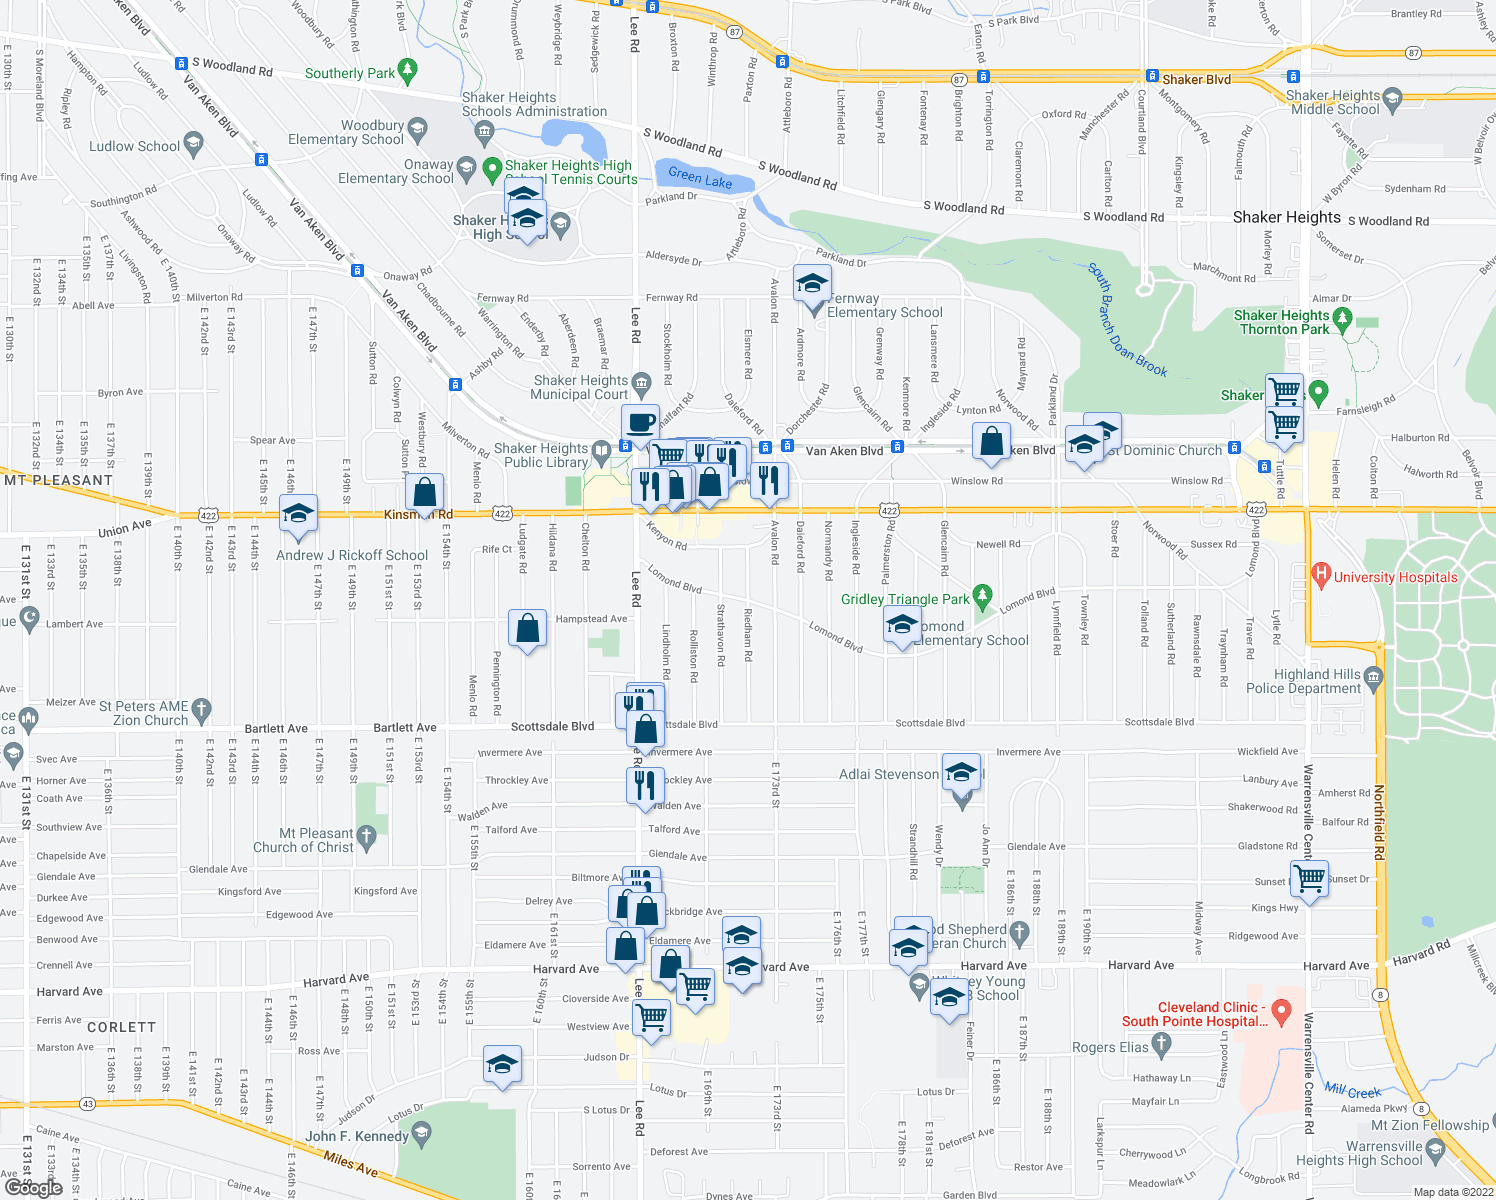 map of restaurants, bars, coffee shops, grocery stores, and more near Riedham Rd in Cleveland